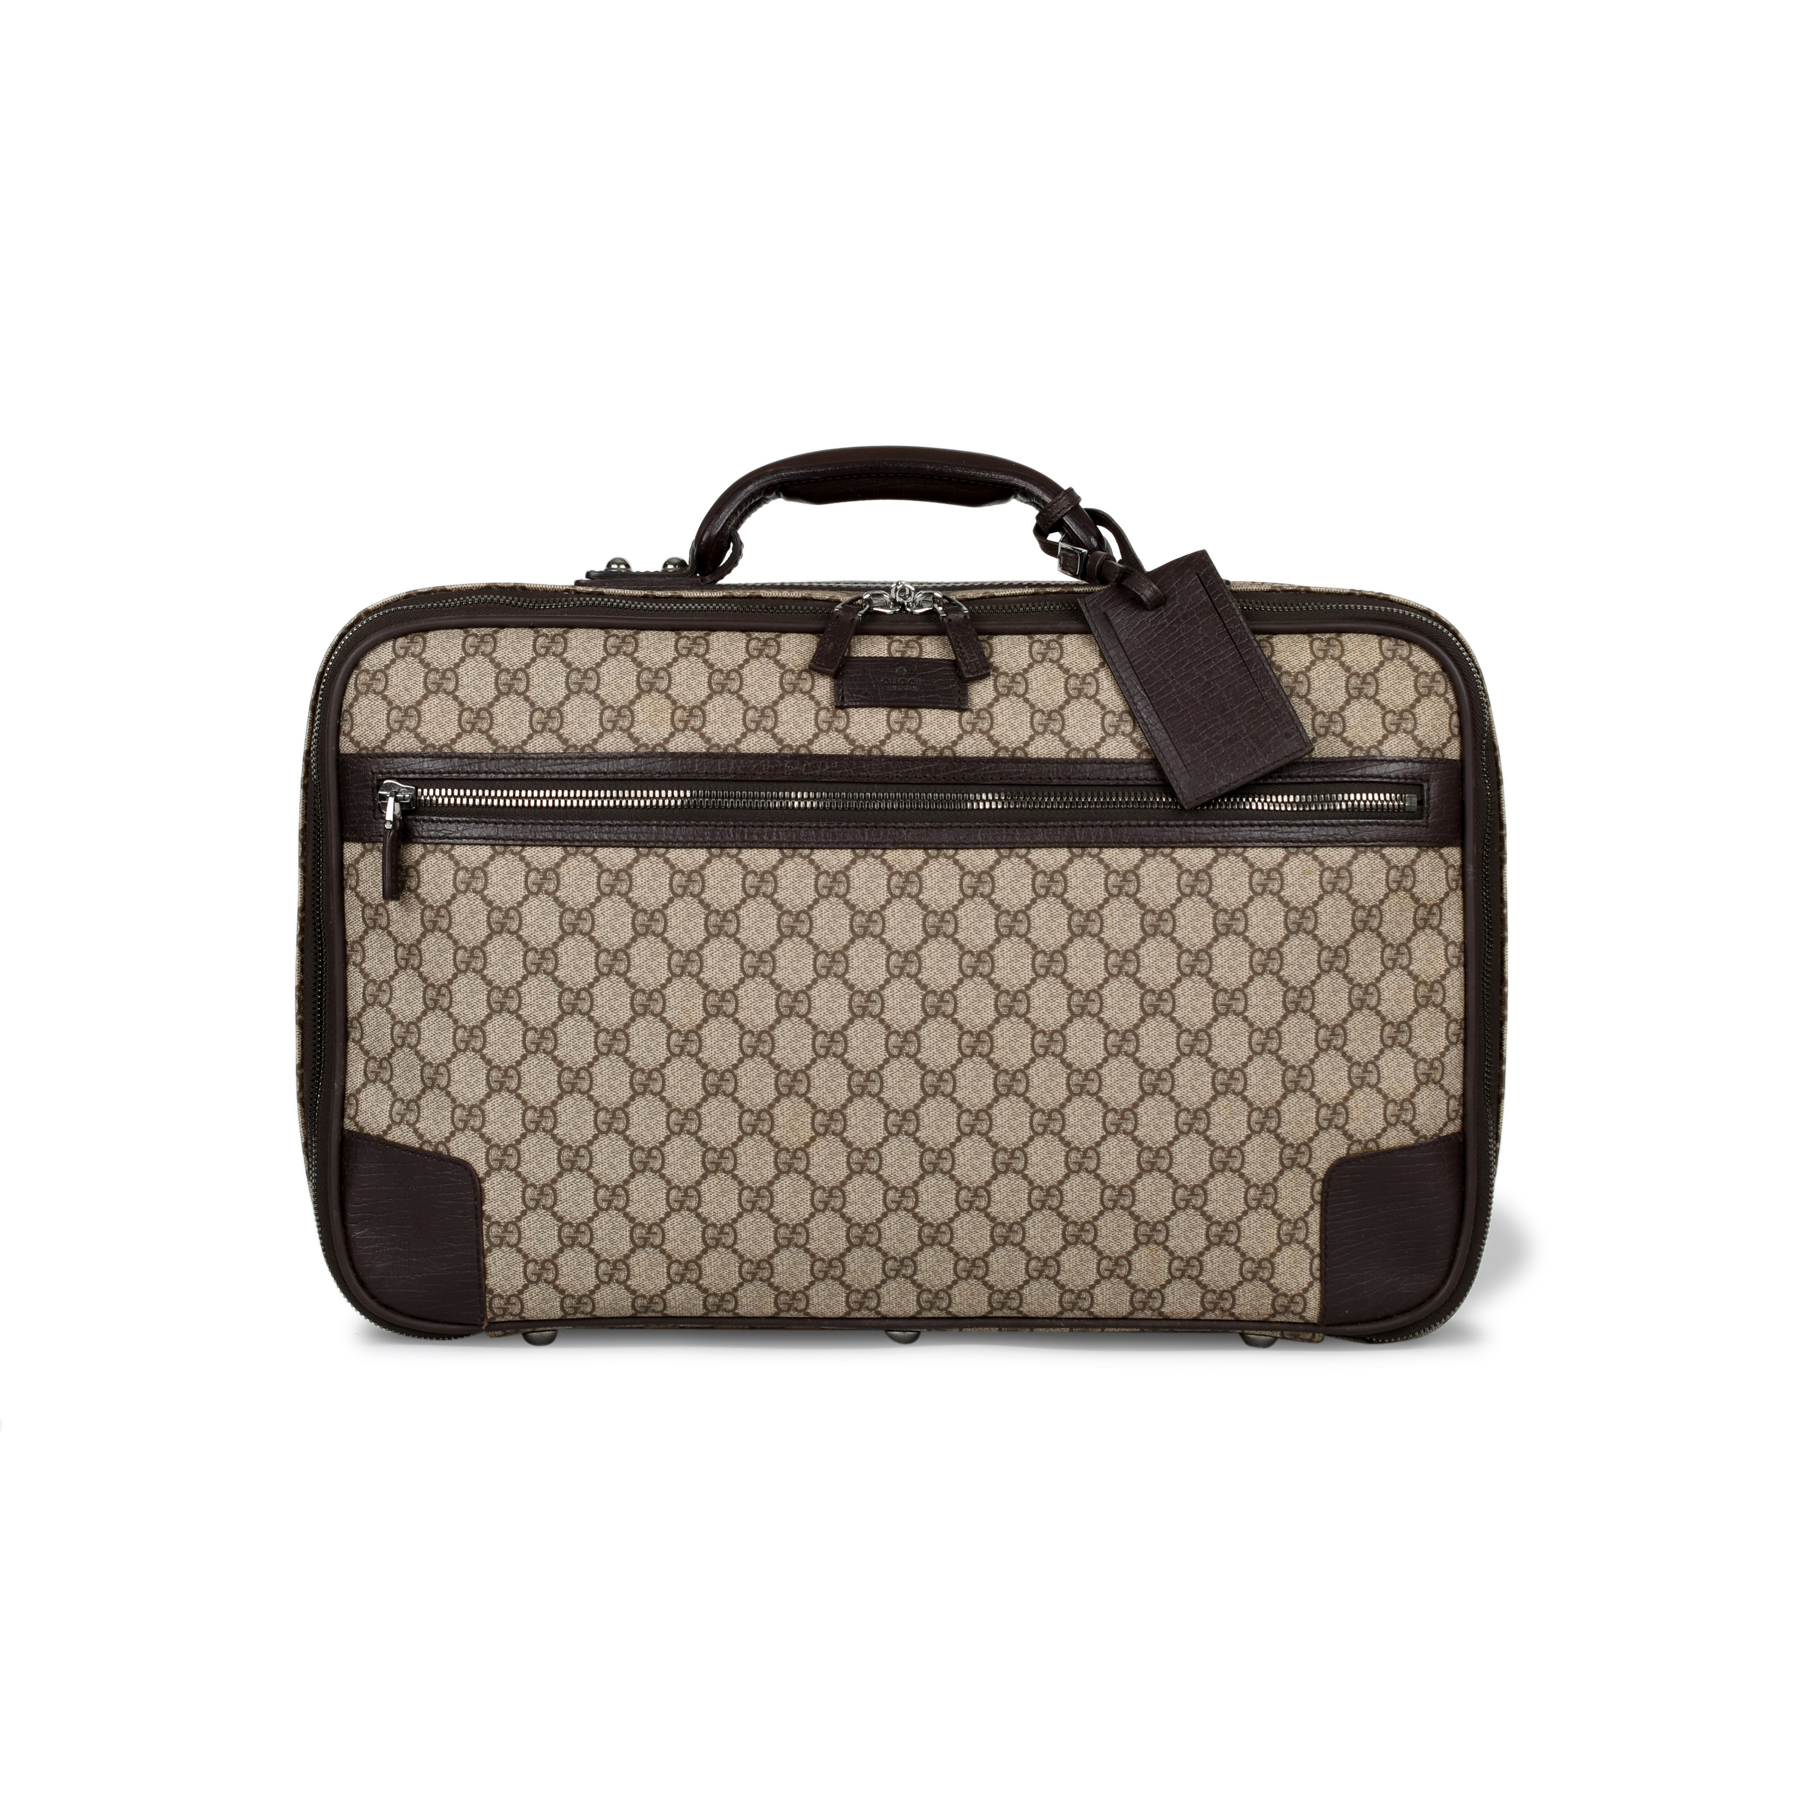 1d0efe4b8c352f Authentic Vintage Gucci Dual Ziparound Suitcase (PSS-430-00016) | THE FIFTH  COLLECTION